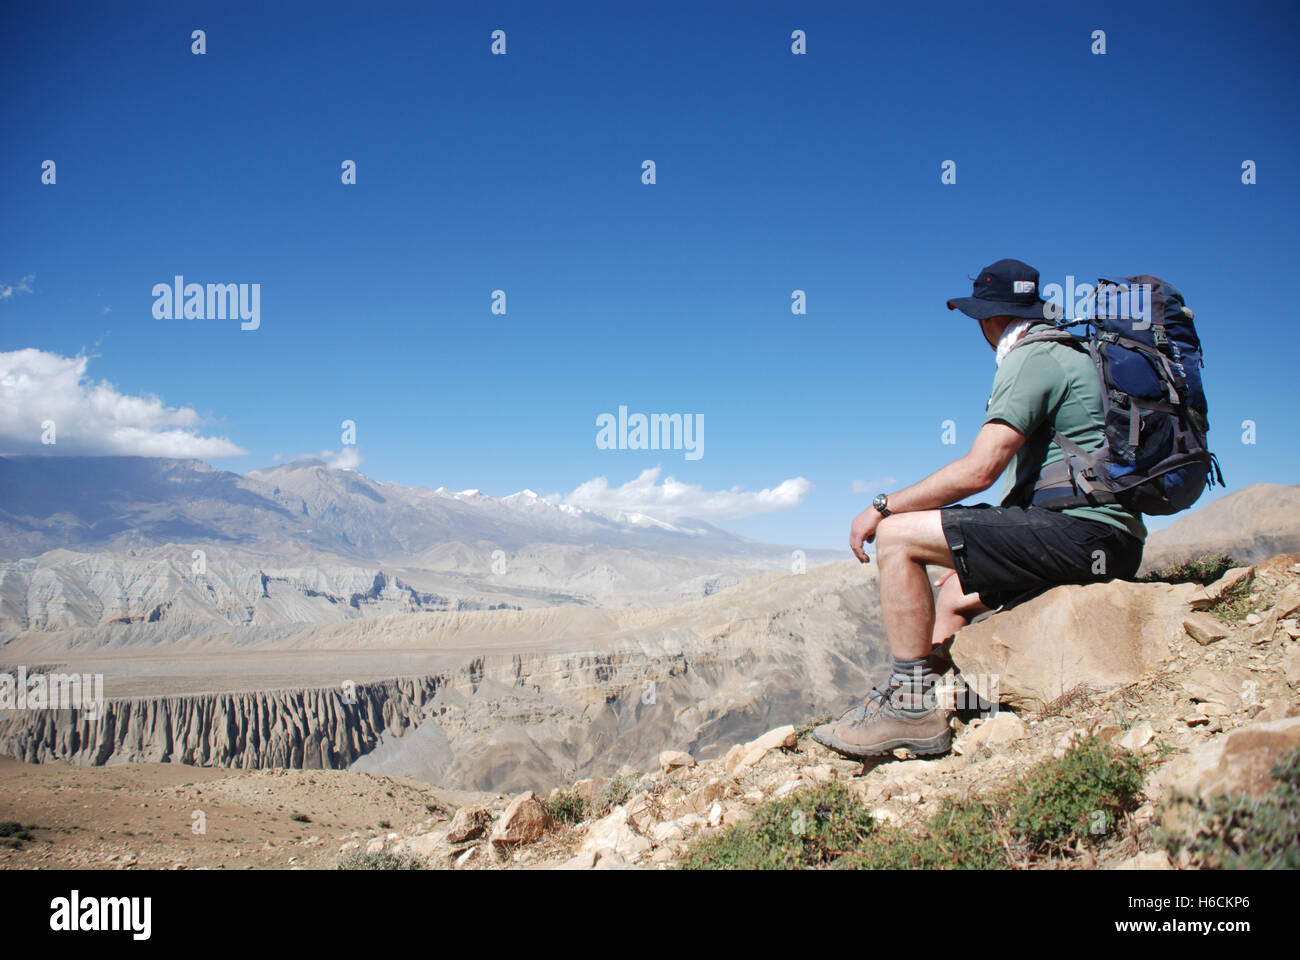 a trekker looks at the view in The Barren mountain landscape of the remote Damodar Himal in the Mustang region of - Stock Image